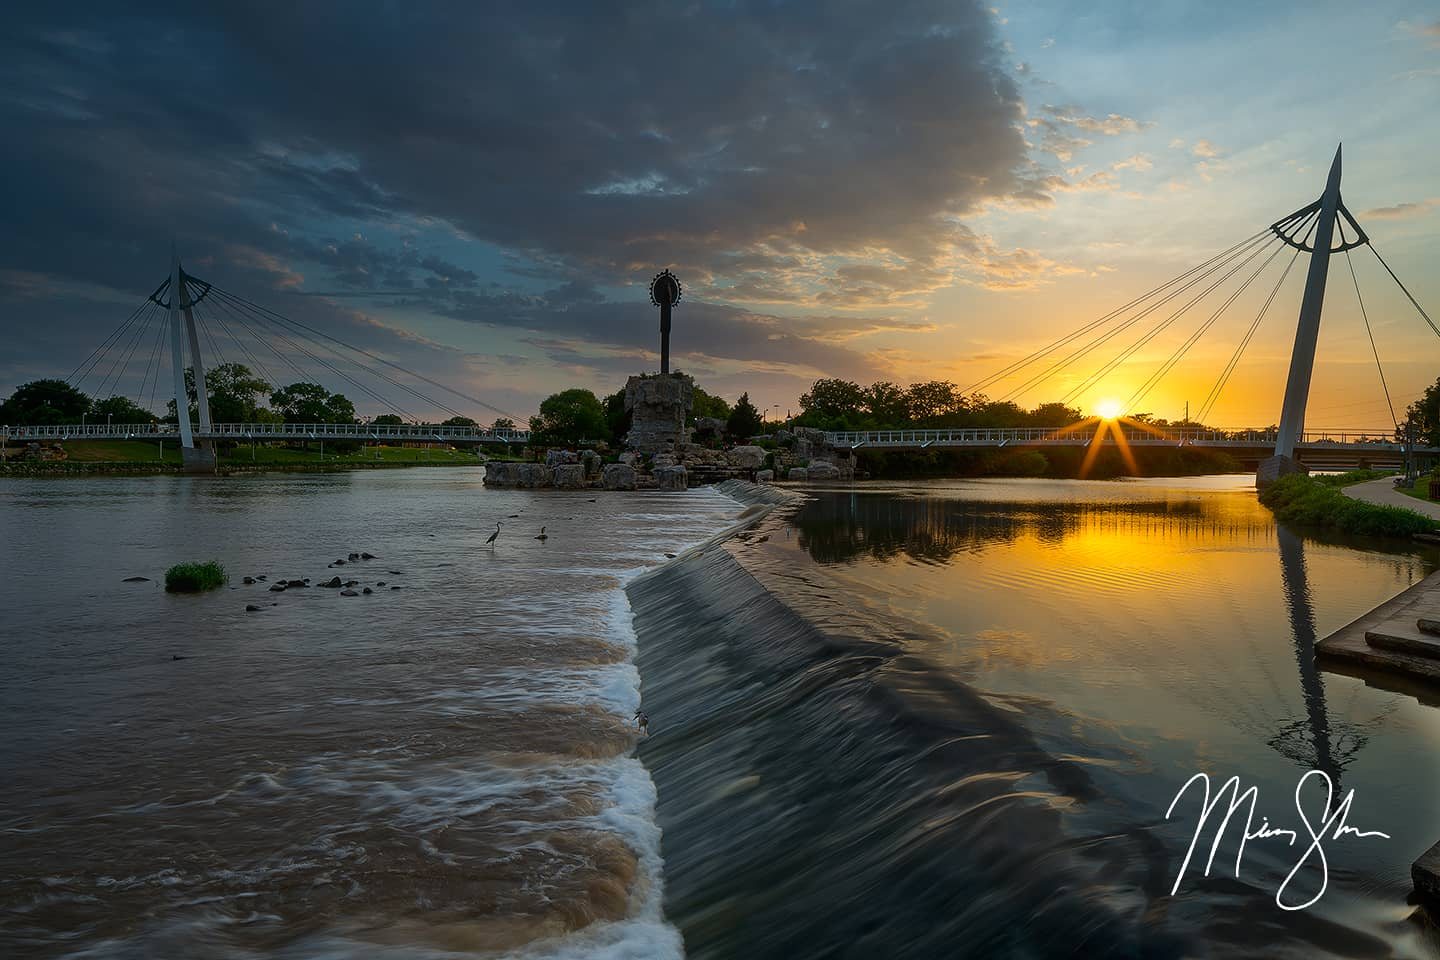 Open edition fine art print of Starburst Sunset at the Keeper of the Plains from Mickey Shannon Photography. Location: The Keeper of the Plains, Wichita, Kansas